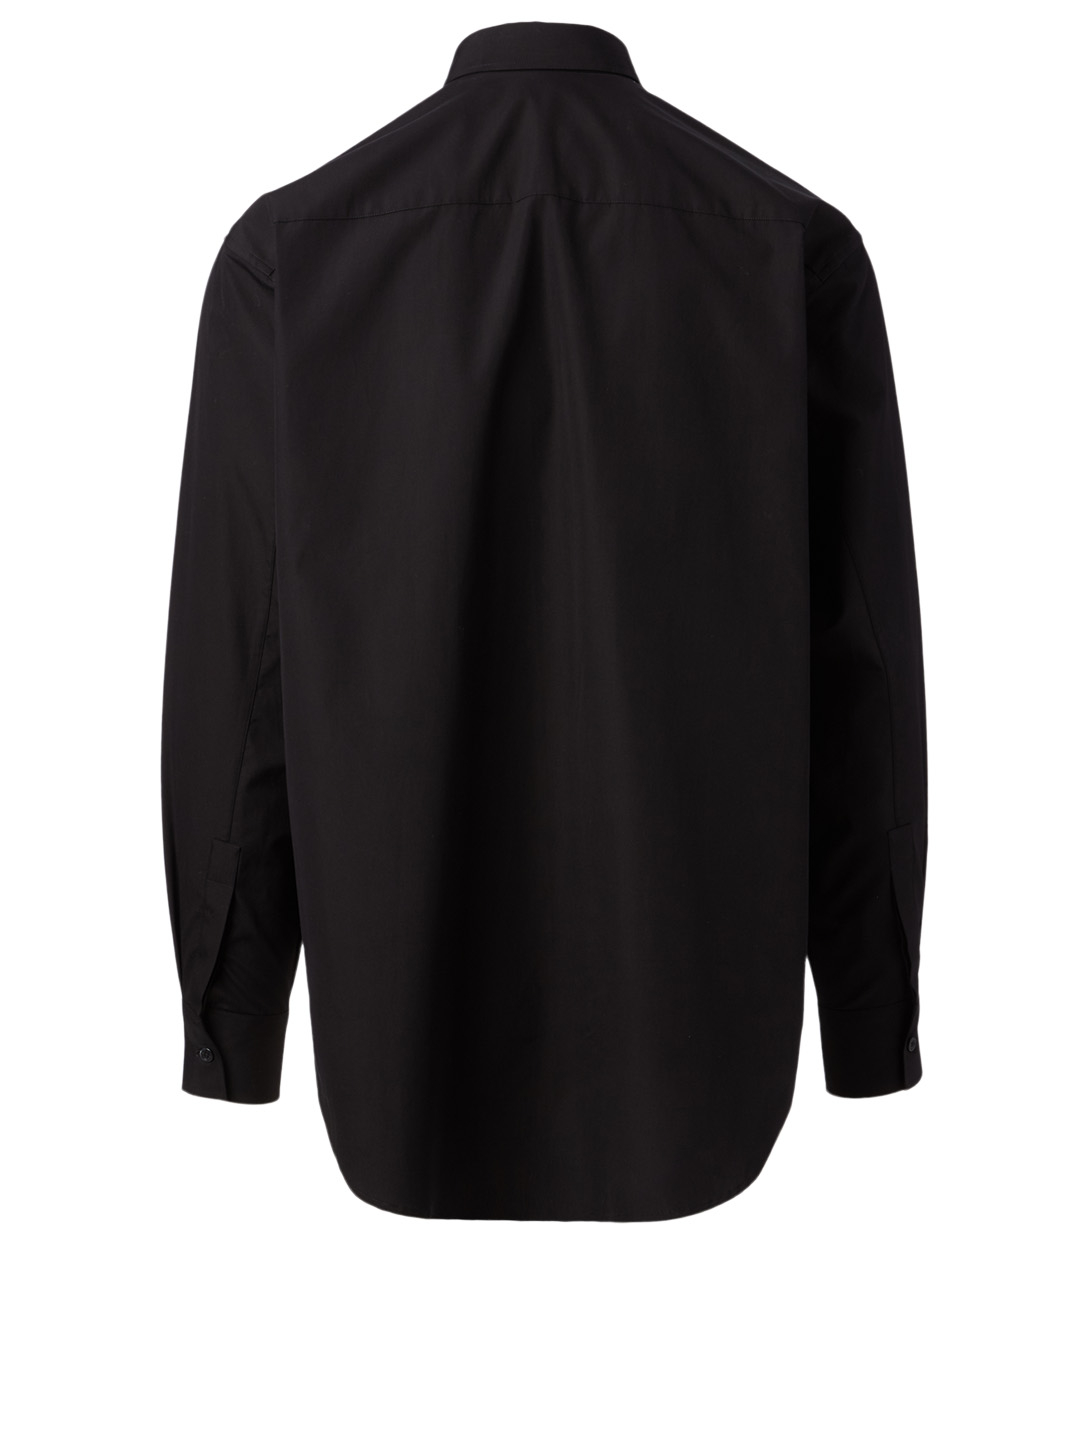 GIVENCHY Cotton Shirt With Logo Men's Black